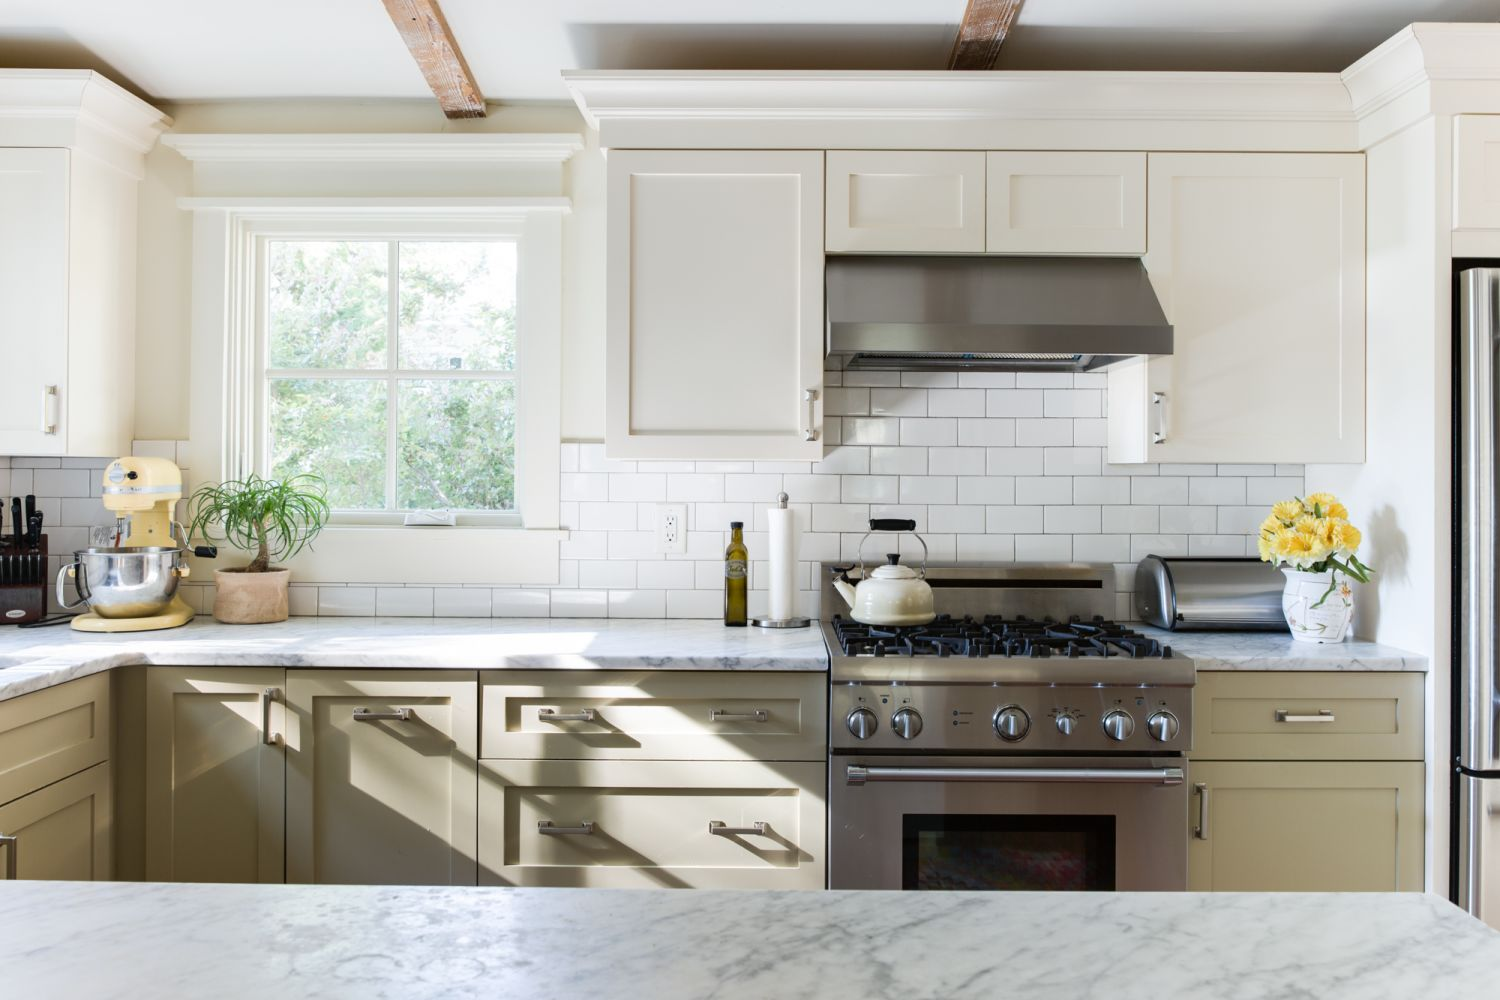 Painting Ideas - Two Tone Kitchen Cabinet Colors